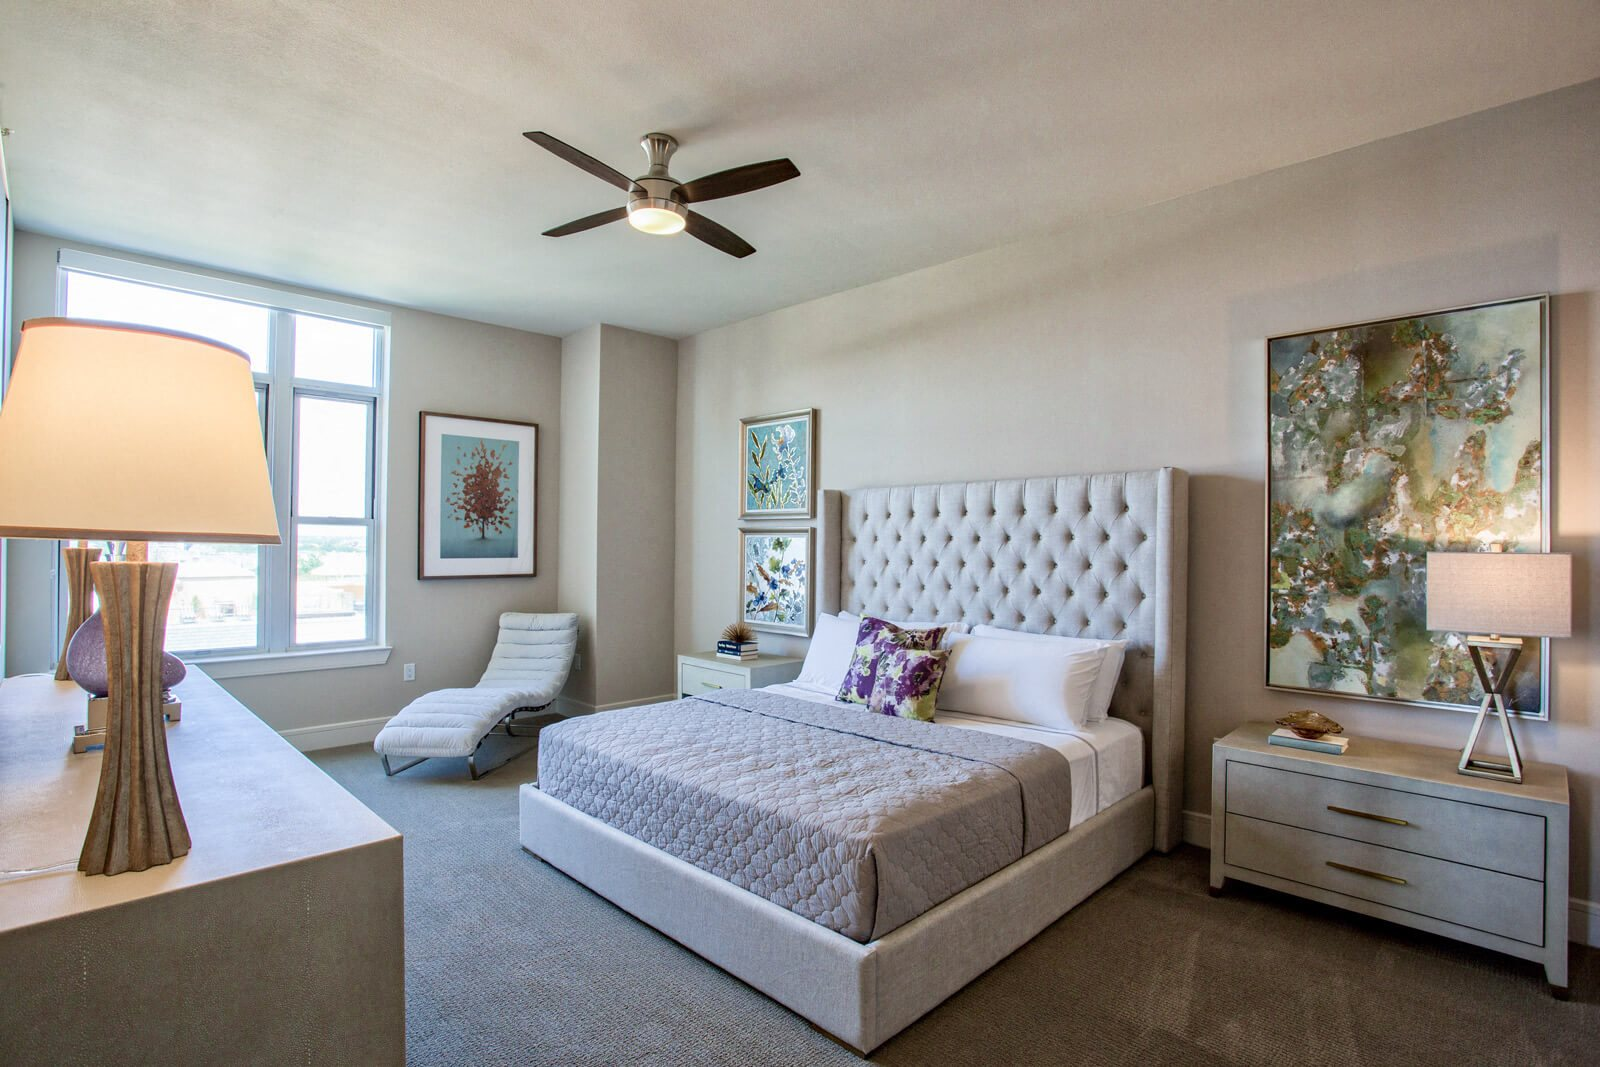 Spacious Master Bedrooms with Ceiling Fans at The Jordan by Windsor, 75201, TX